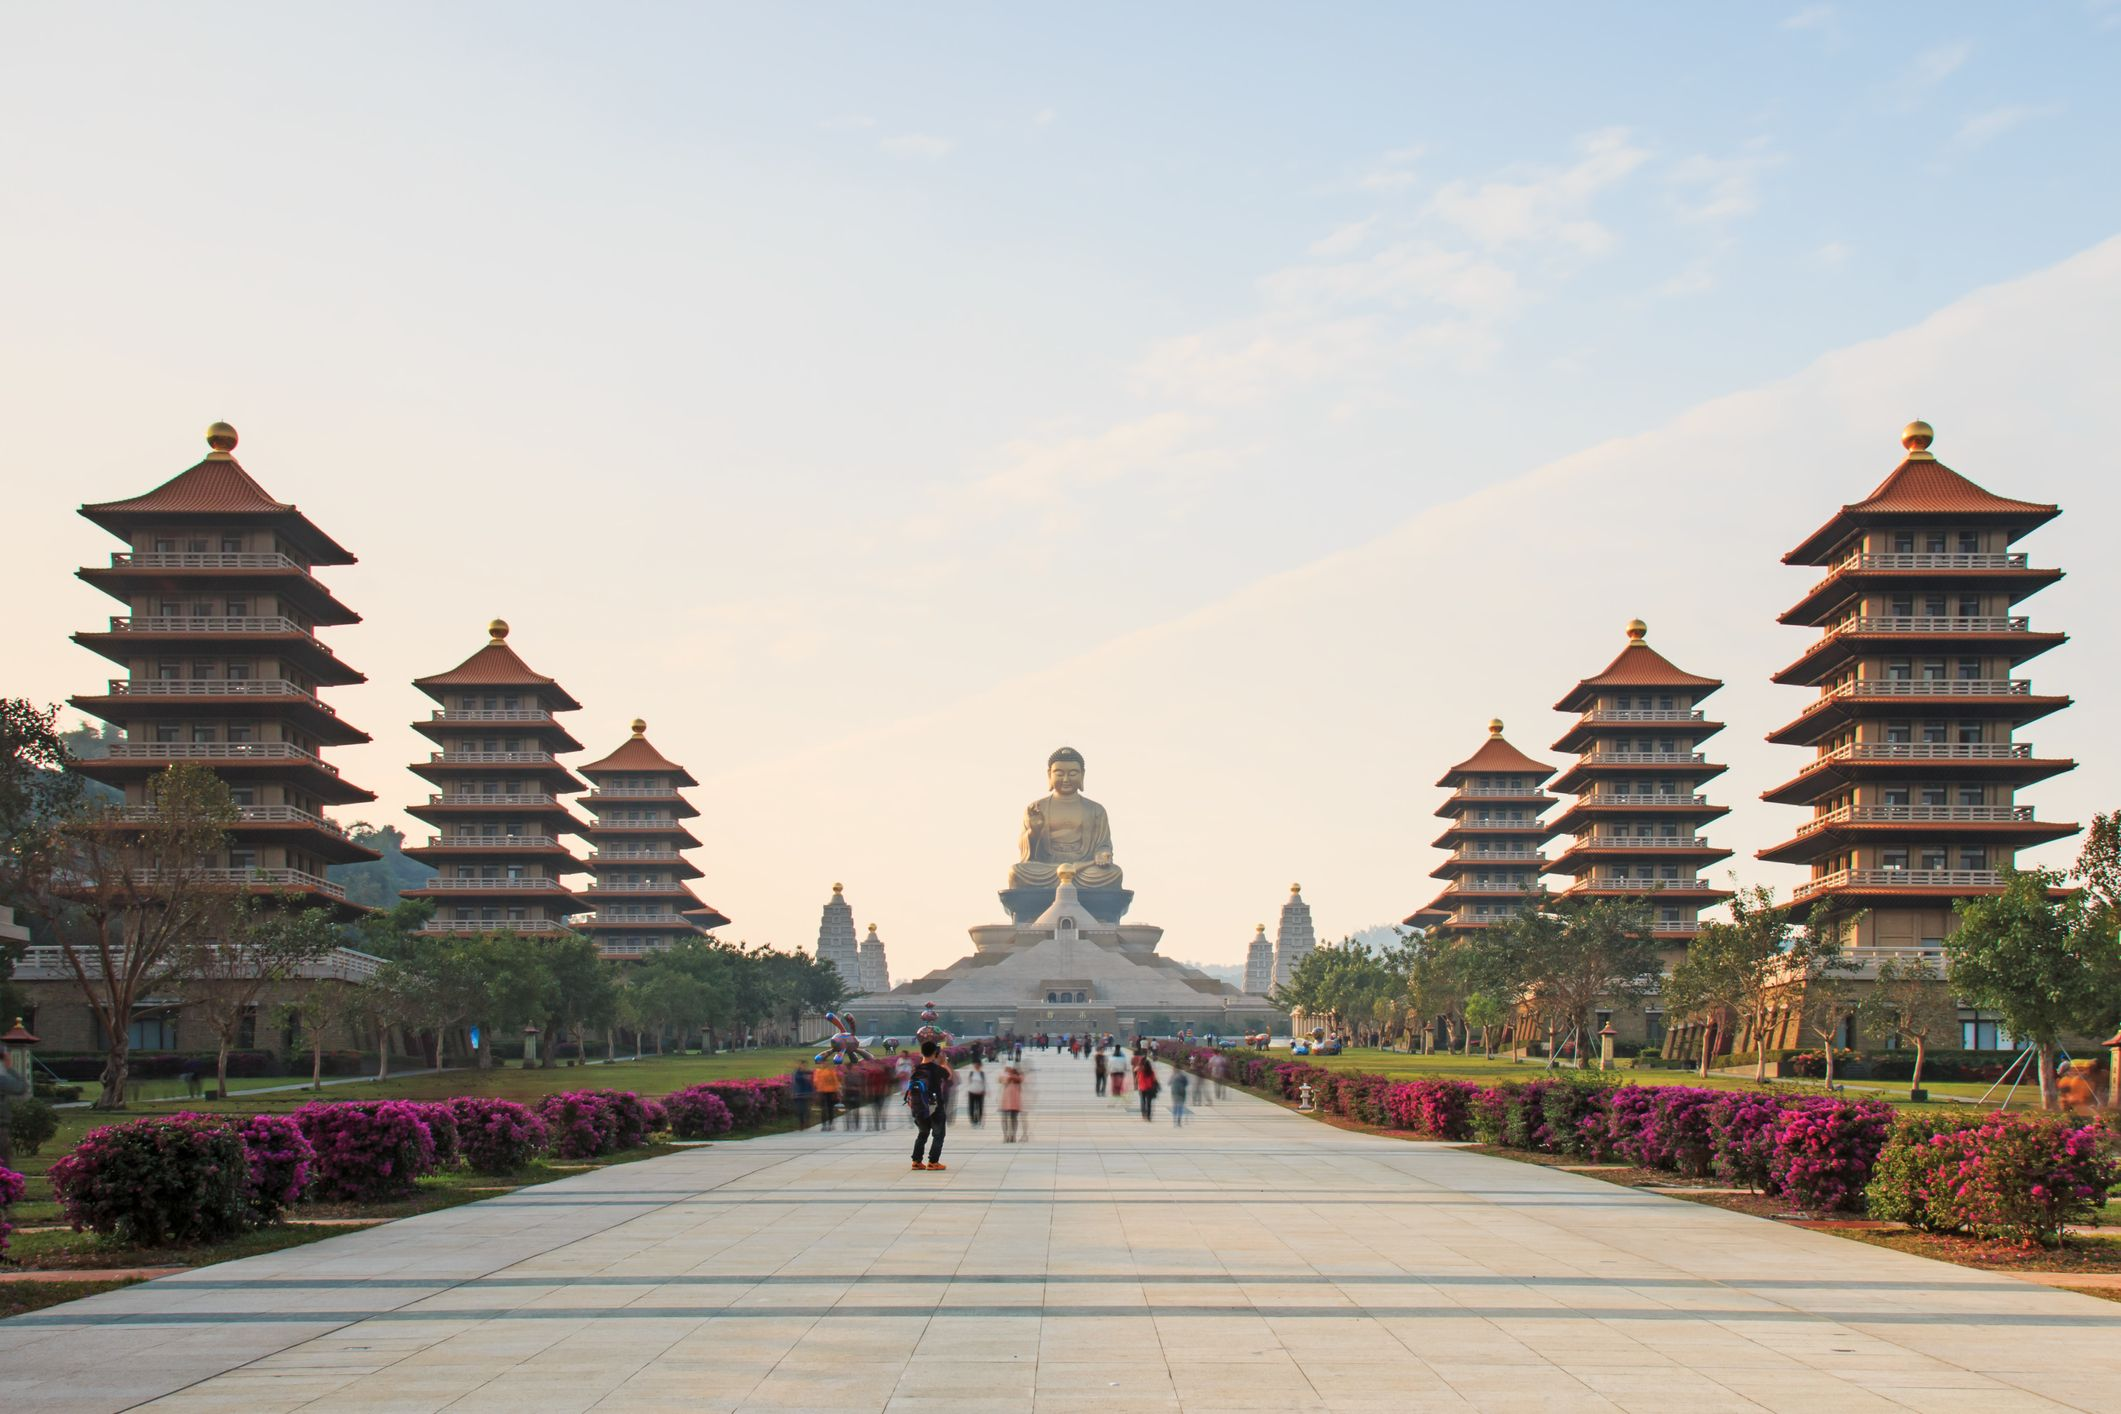 Affordable Family Day In Kaohsiung Taiwan In